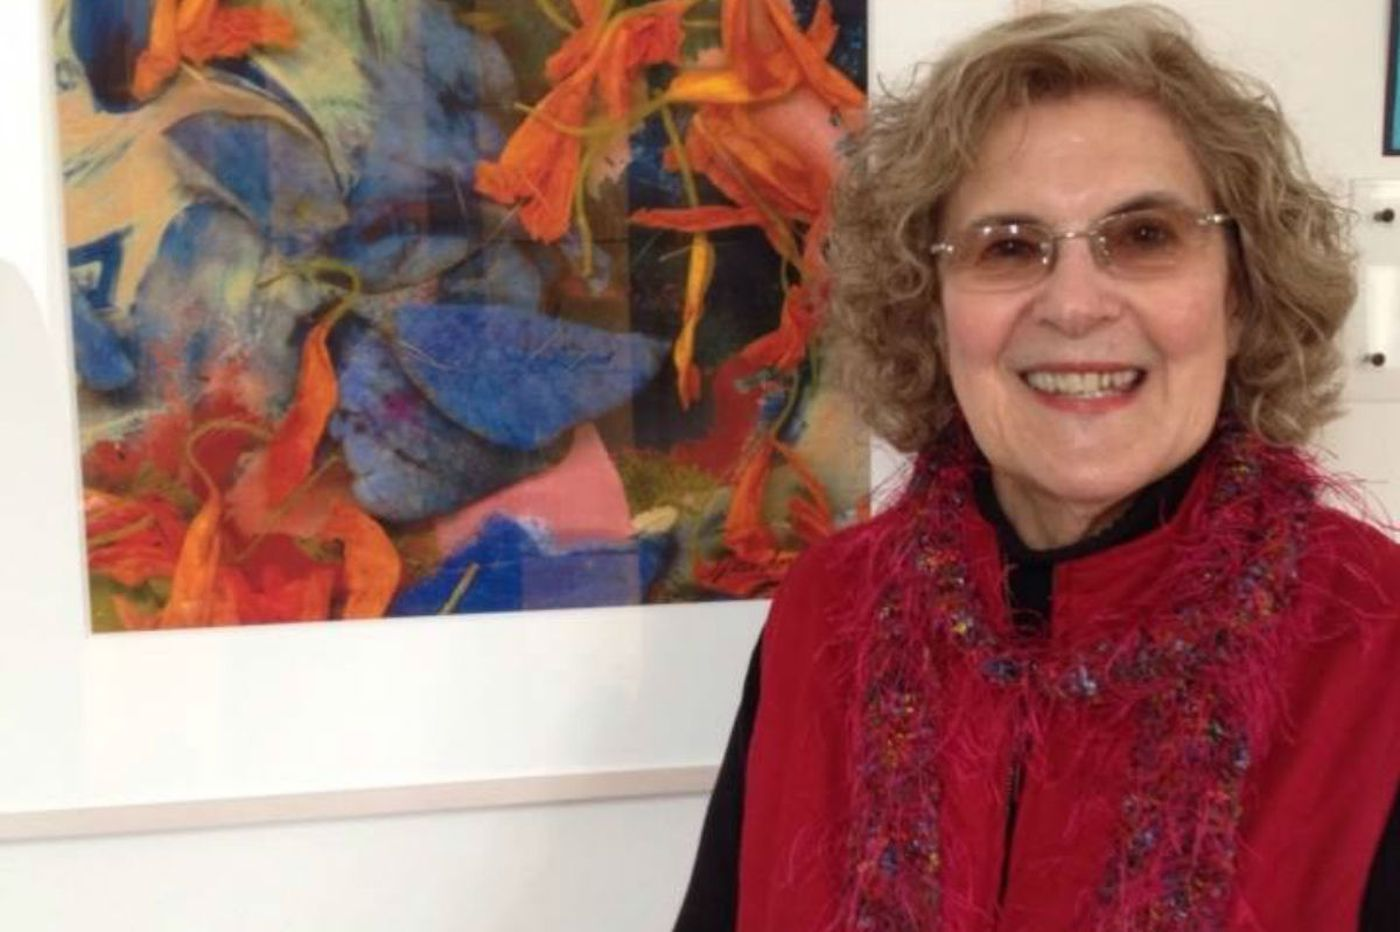 Merle Spandorfer, 83, artist and educator for 50 years at Cheltenham Center for the Arts